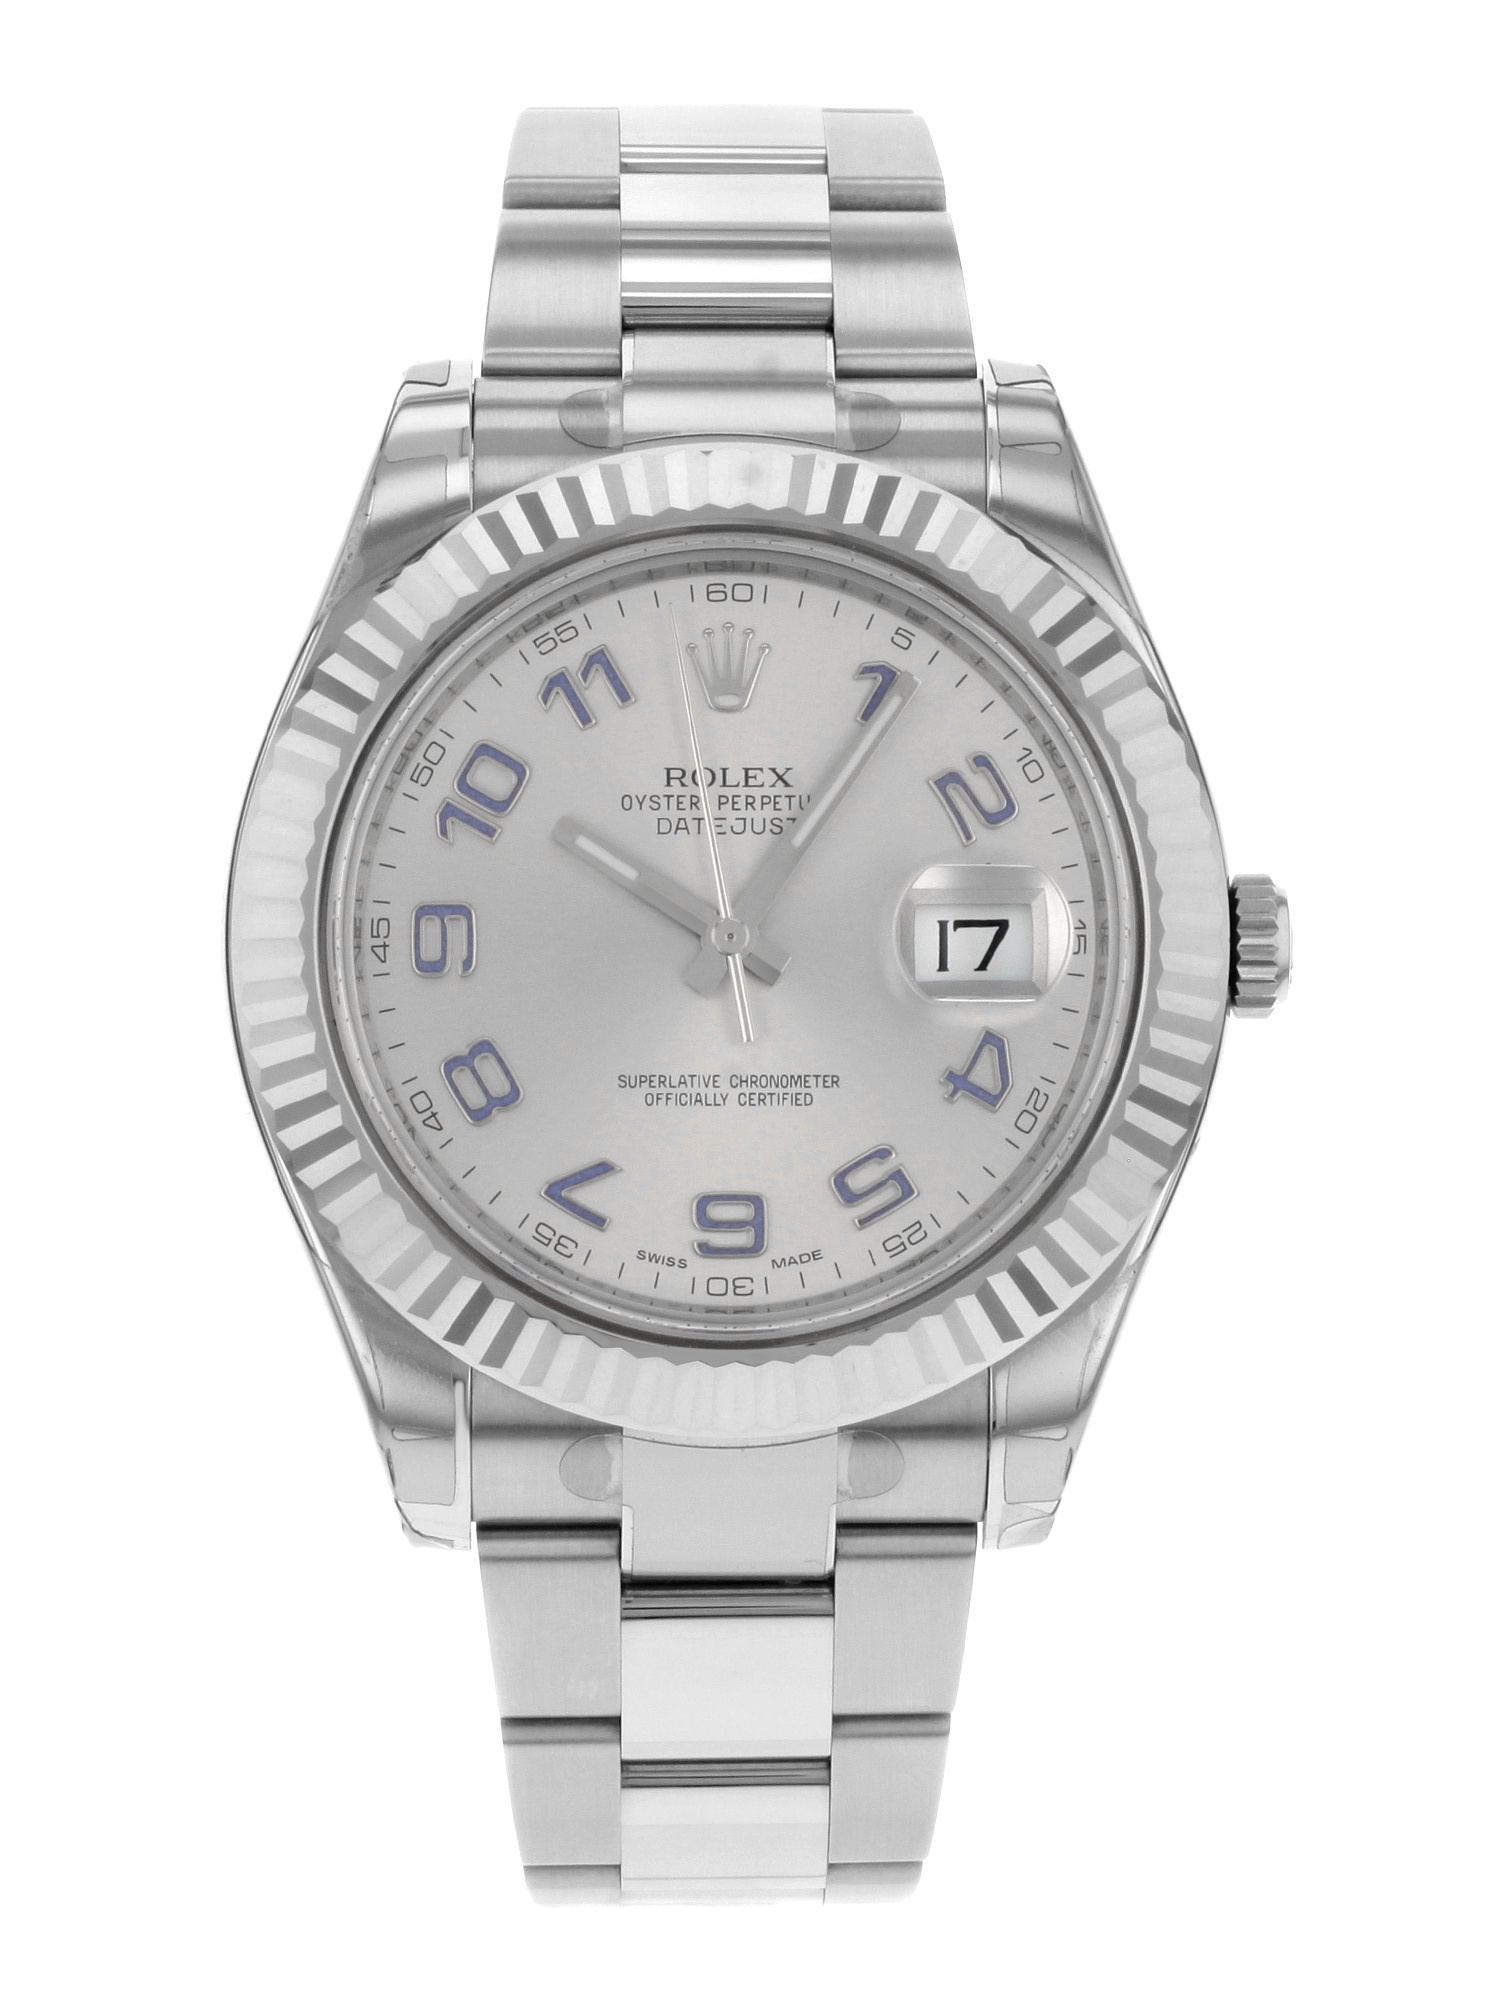 Rolex Datejust II 116334 GAO Steel 18k White Gold Automatic Mens Watch